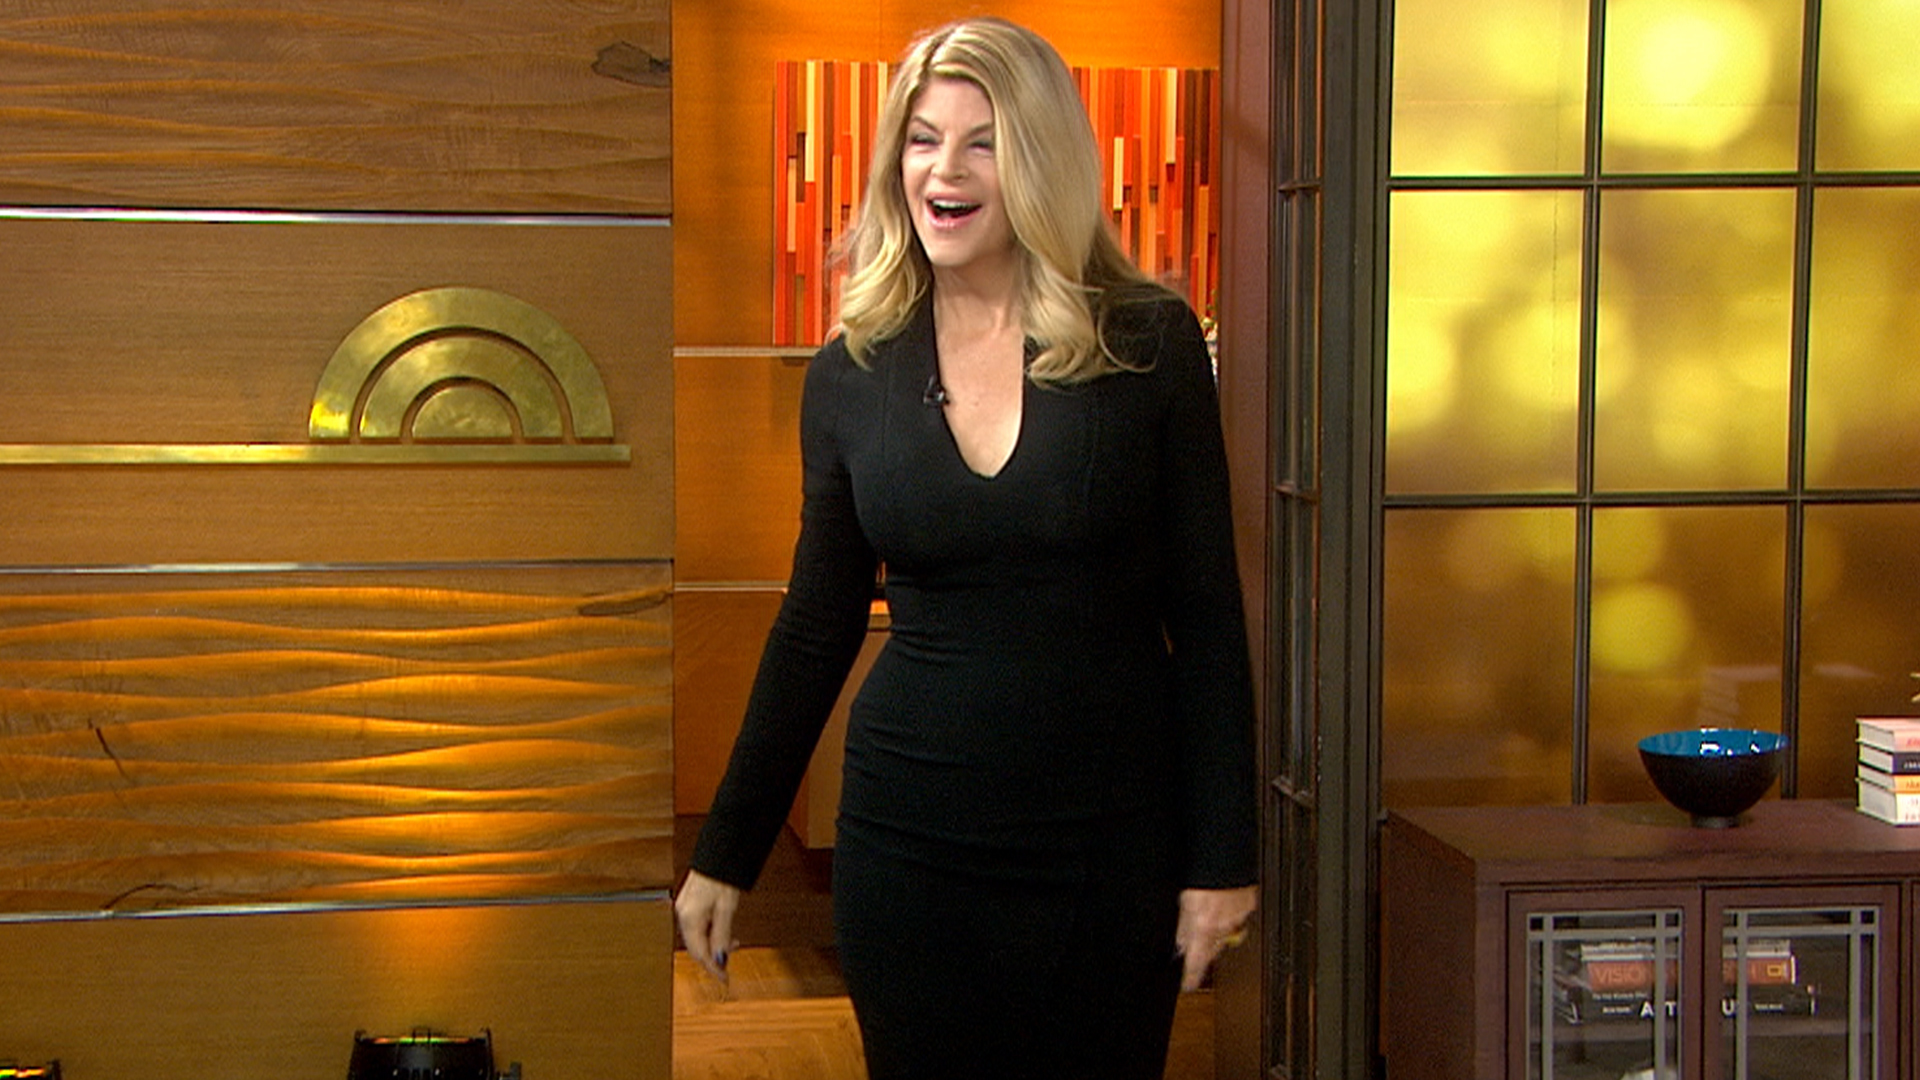 Kirstie Alley Wallpapers Images Photos Pictures Backgrounds